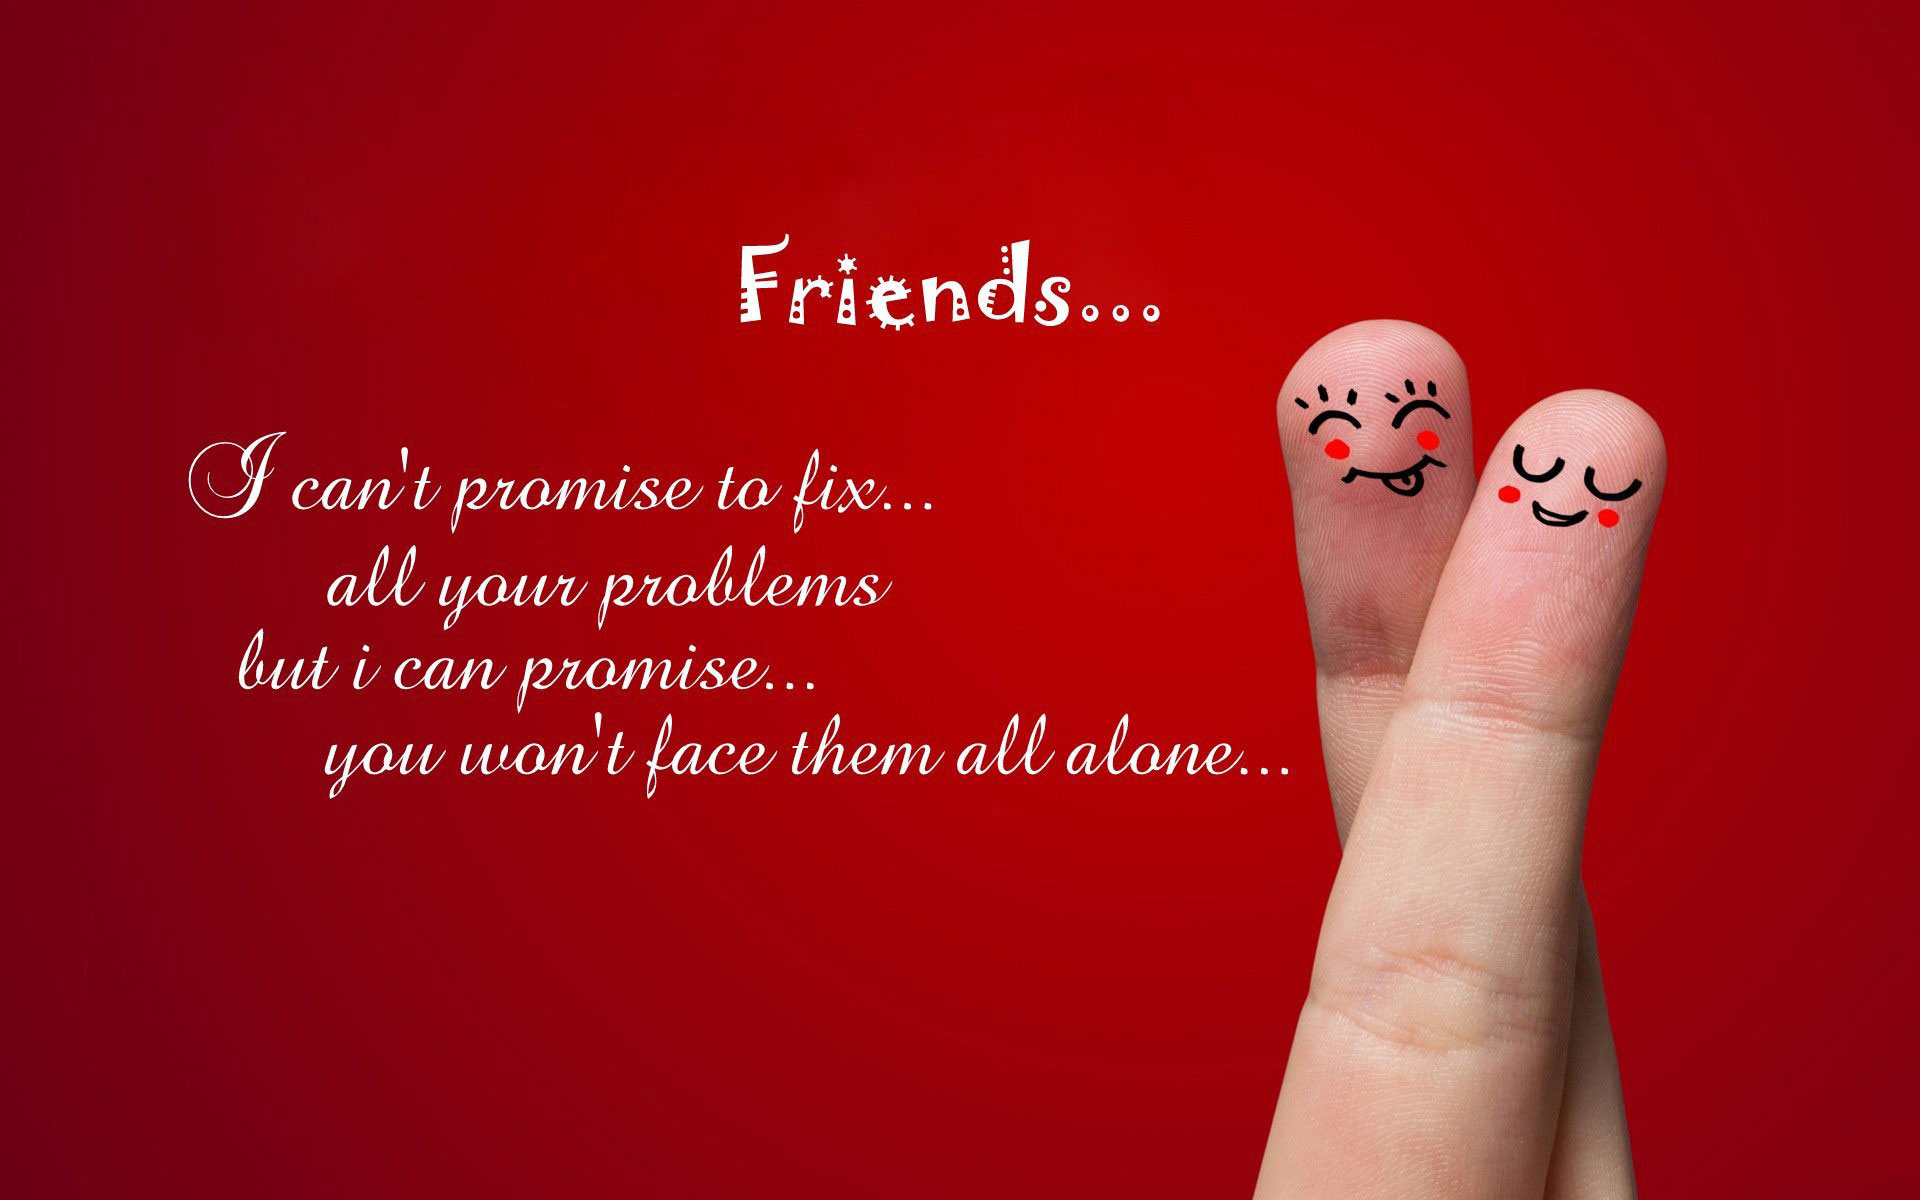 Quotes About Friendship Pictures 40 Cute Friendship Quotes With Images  Friendship Wallpapers